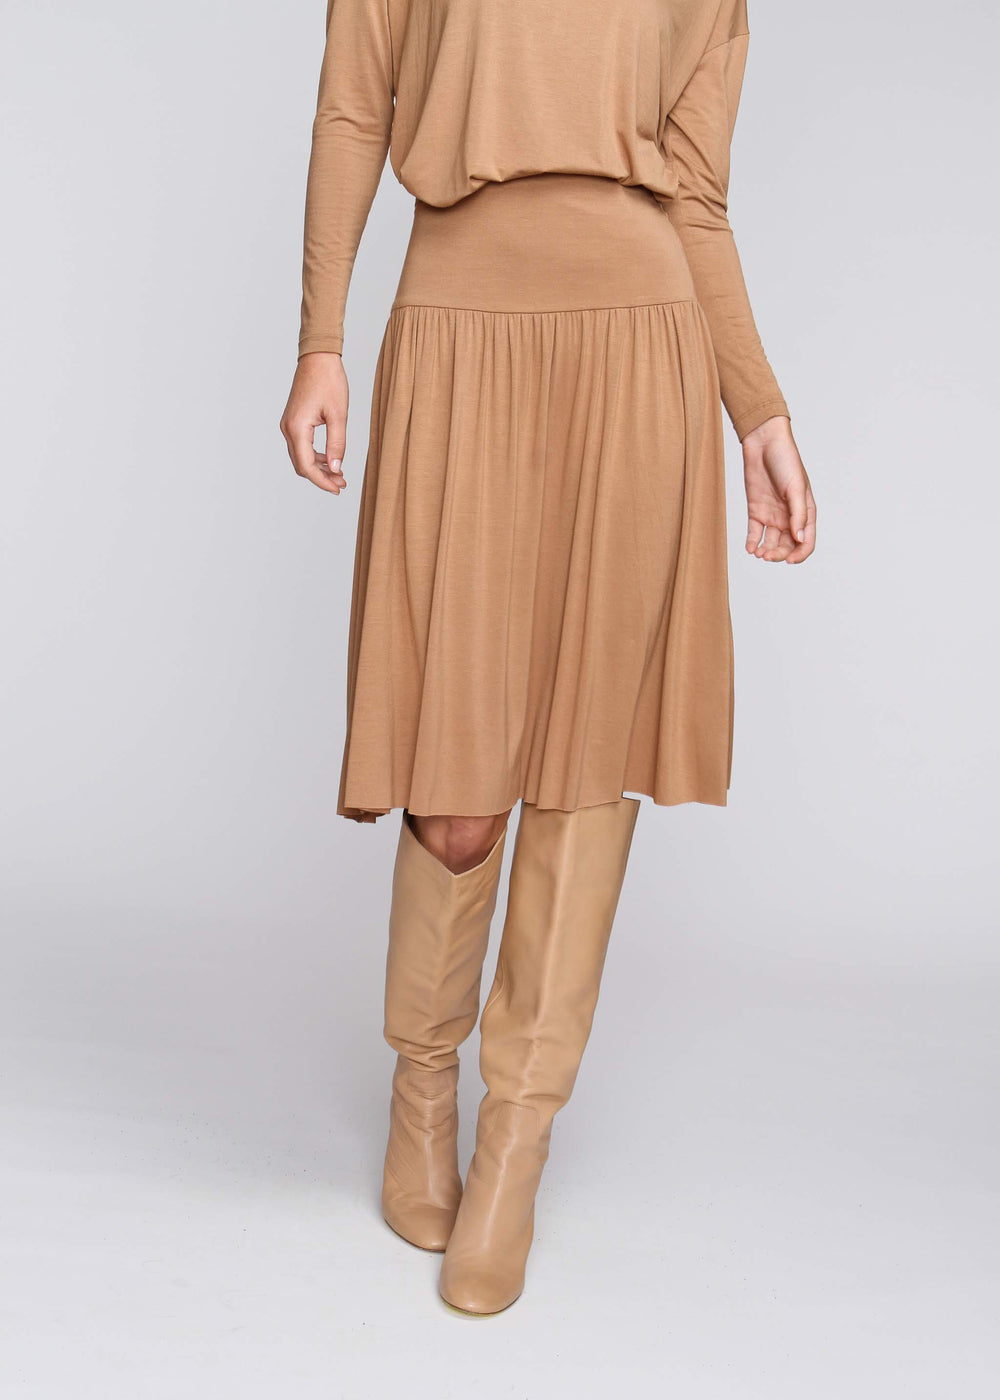 Band Skirt - Camel - The Frock NYC